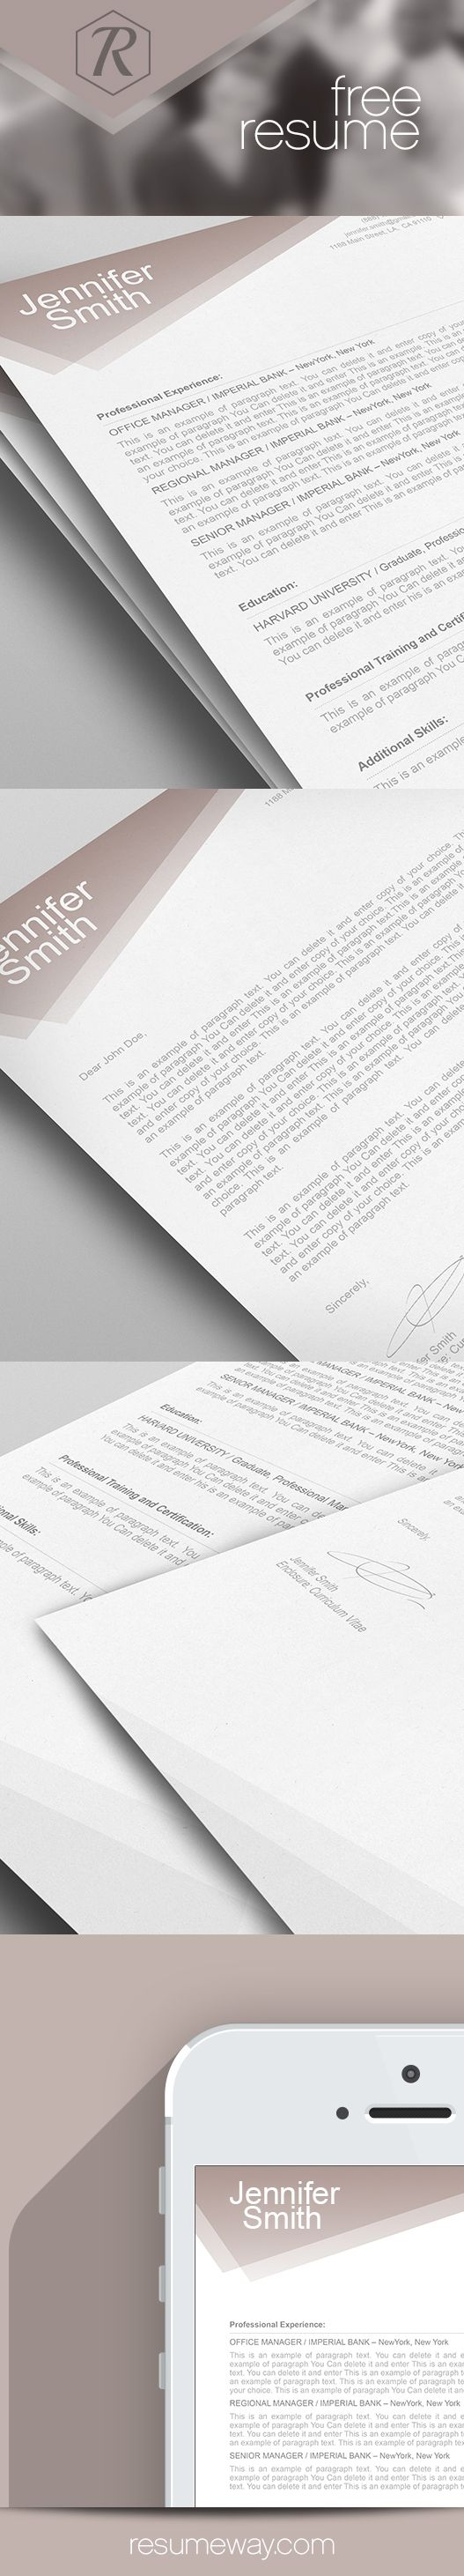 free resume template 1100010 premium line of resume cover letter templates edit with ms word apple pages - Free Cover Letter Template Microsoft Word